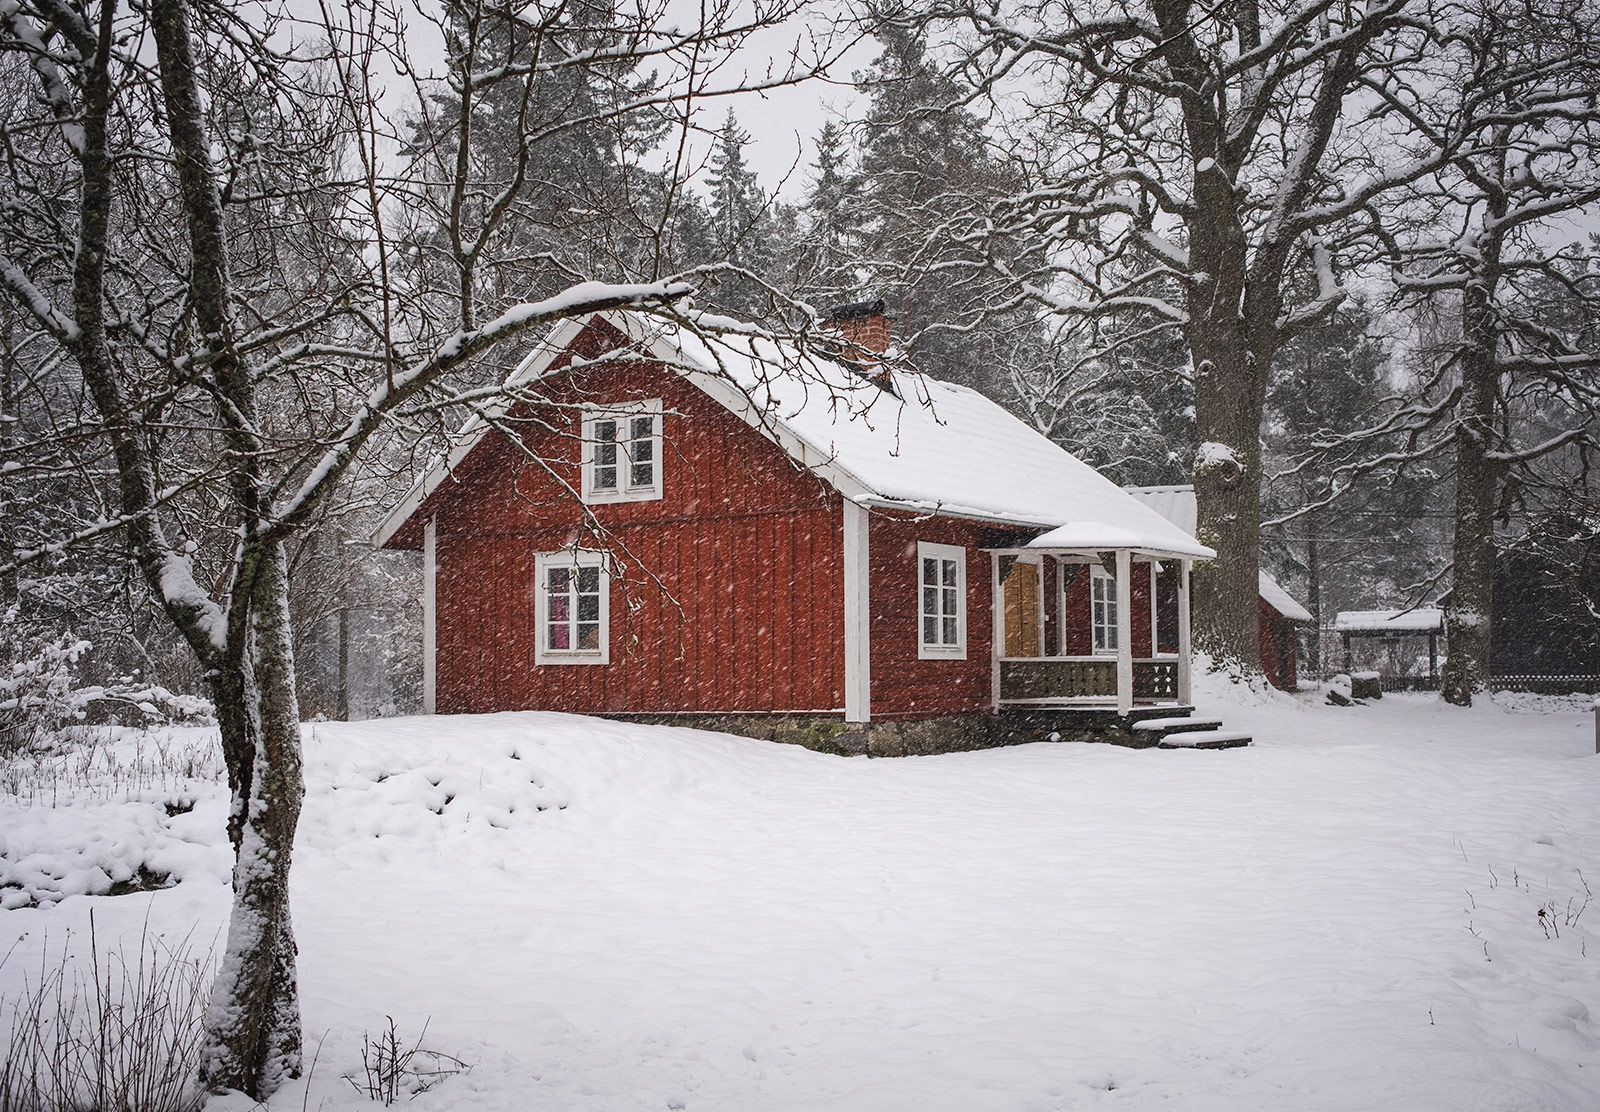 Red wooden house in snow